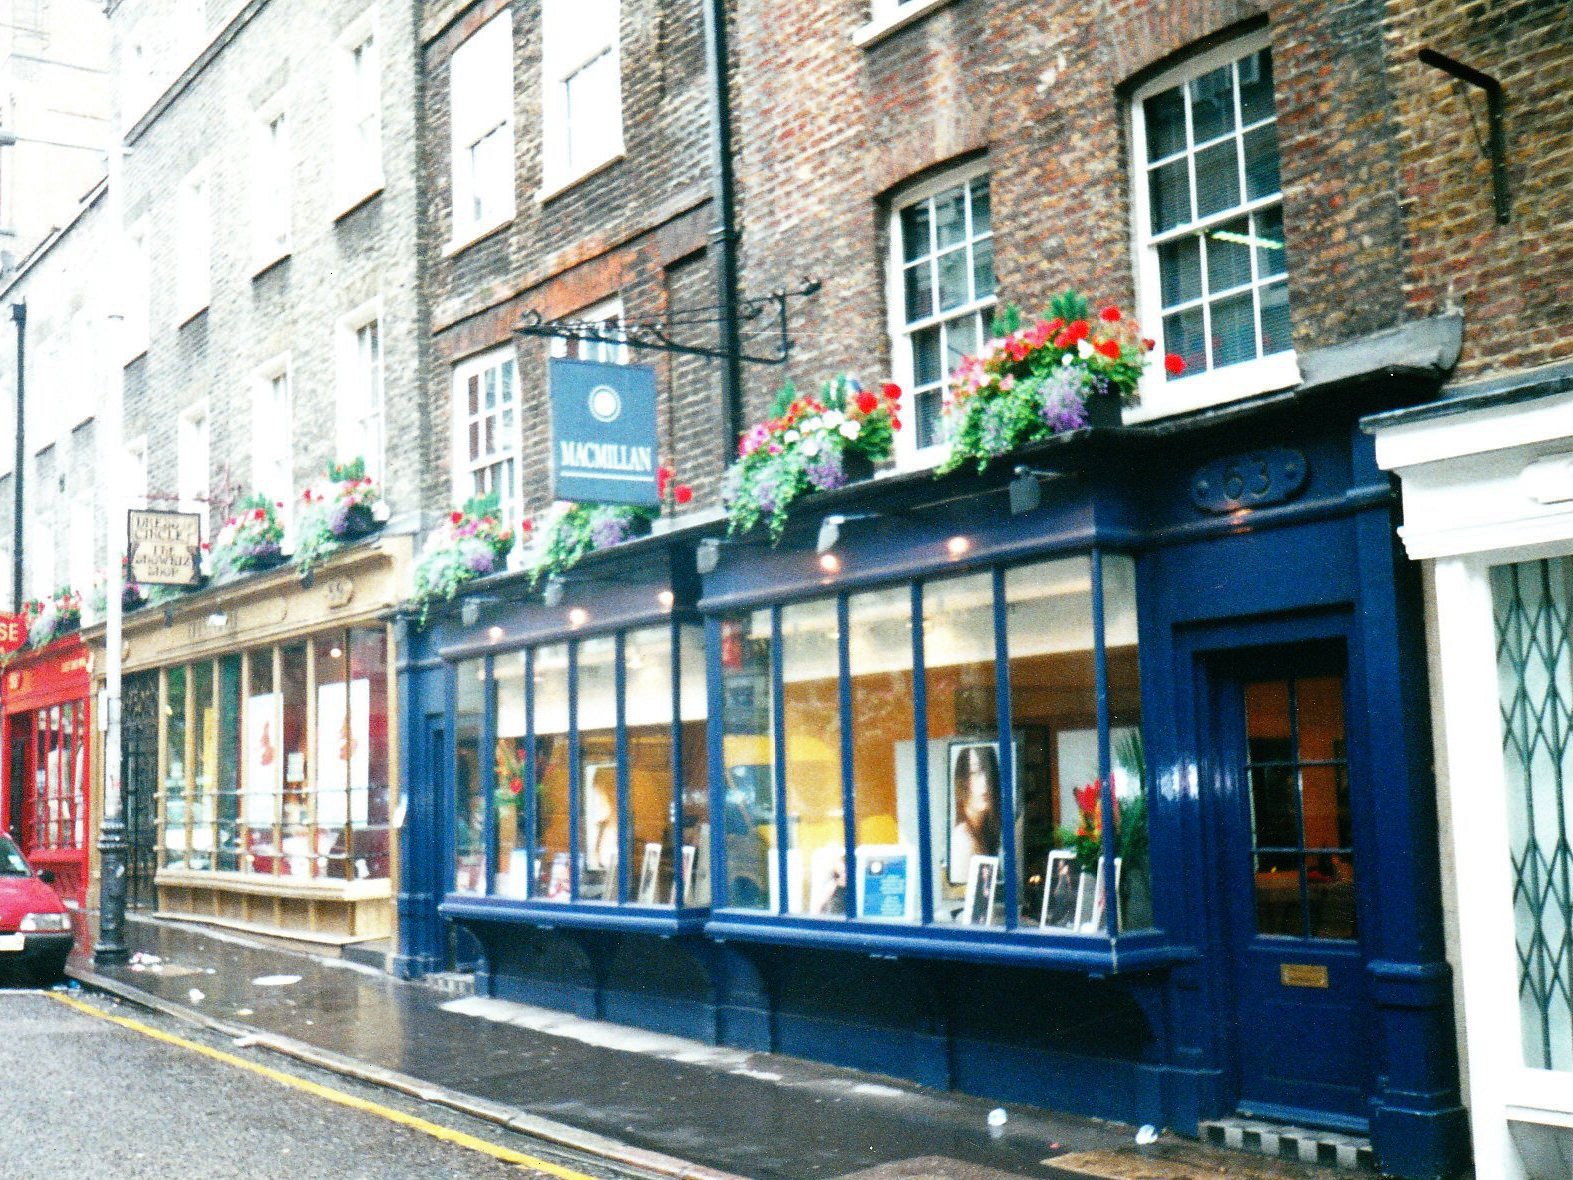 Early nineteenth century shopfronts on Monmouth Street, restored by Shaftesbury PLC.